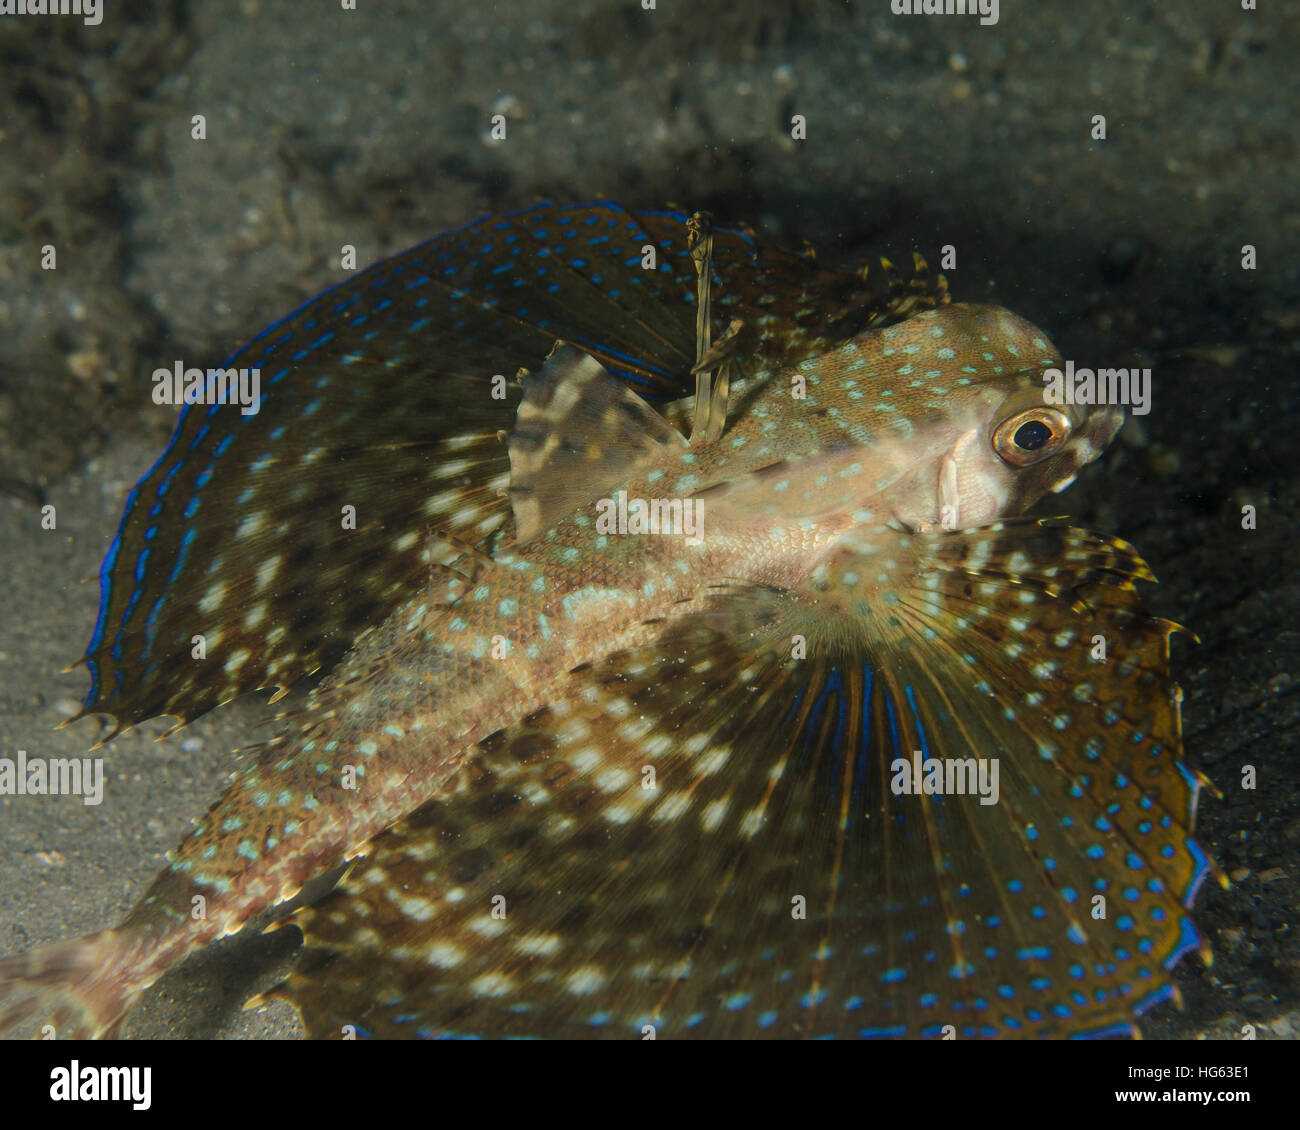 A flying gurnard with wings open in West Palm Beach, Florida. - Stock Image